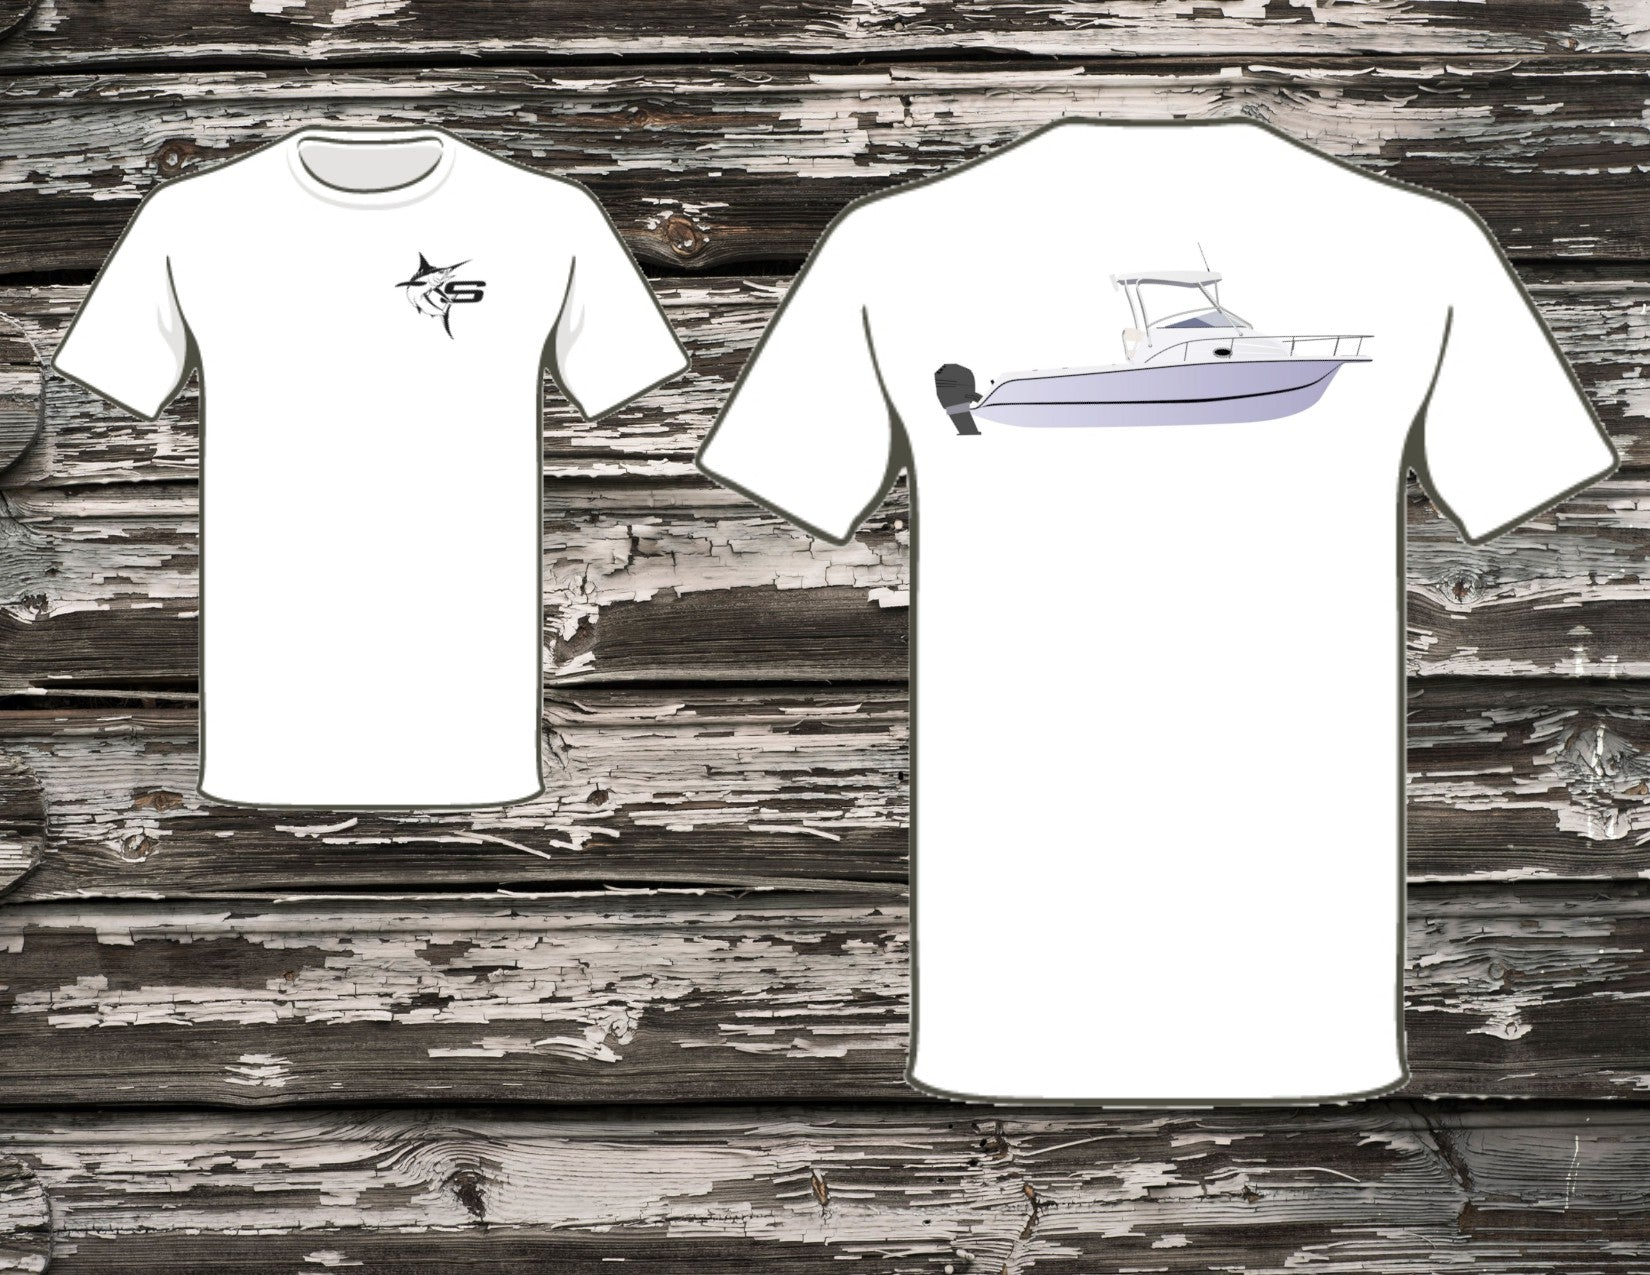 Striper 22 Boat T-Shirt